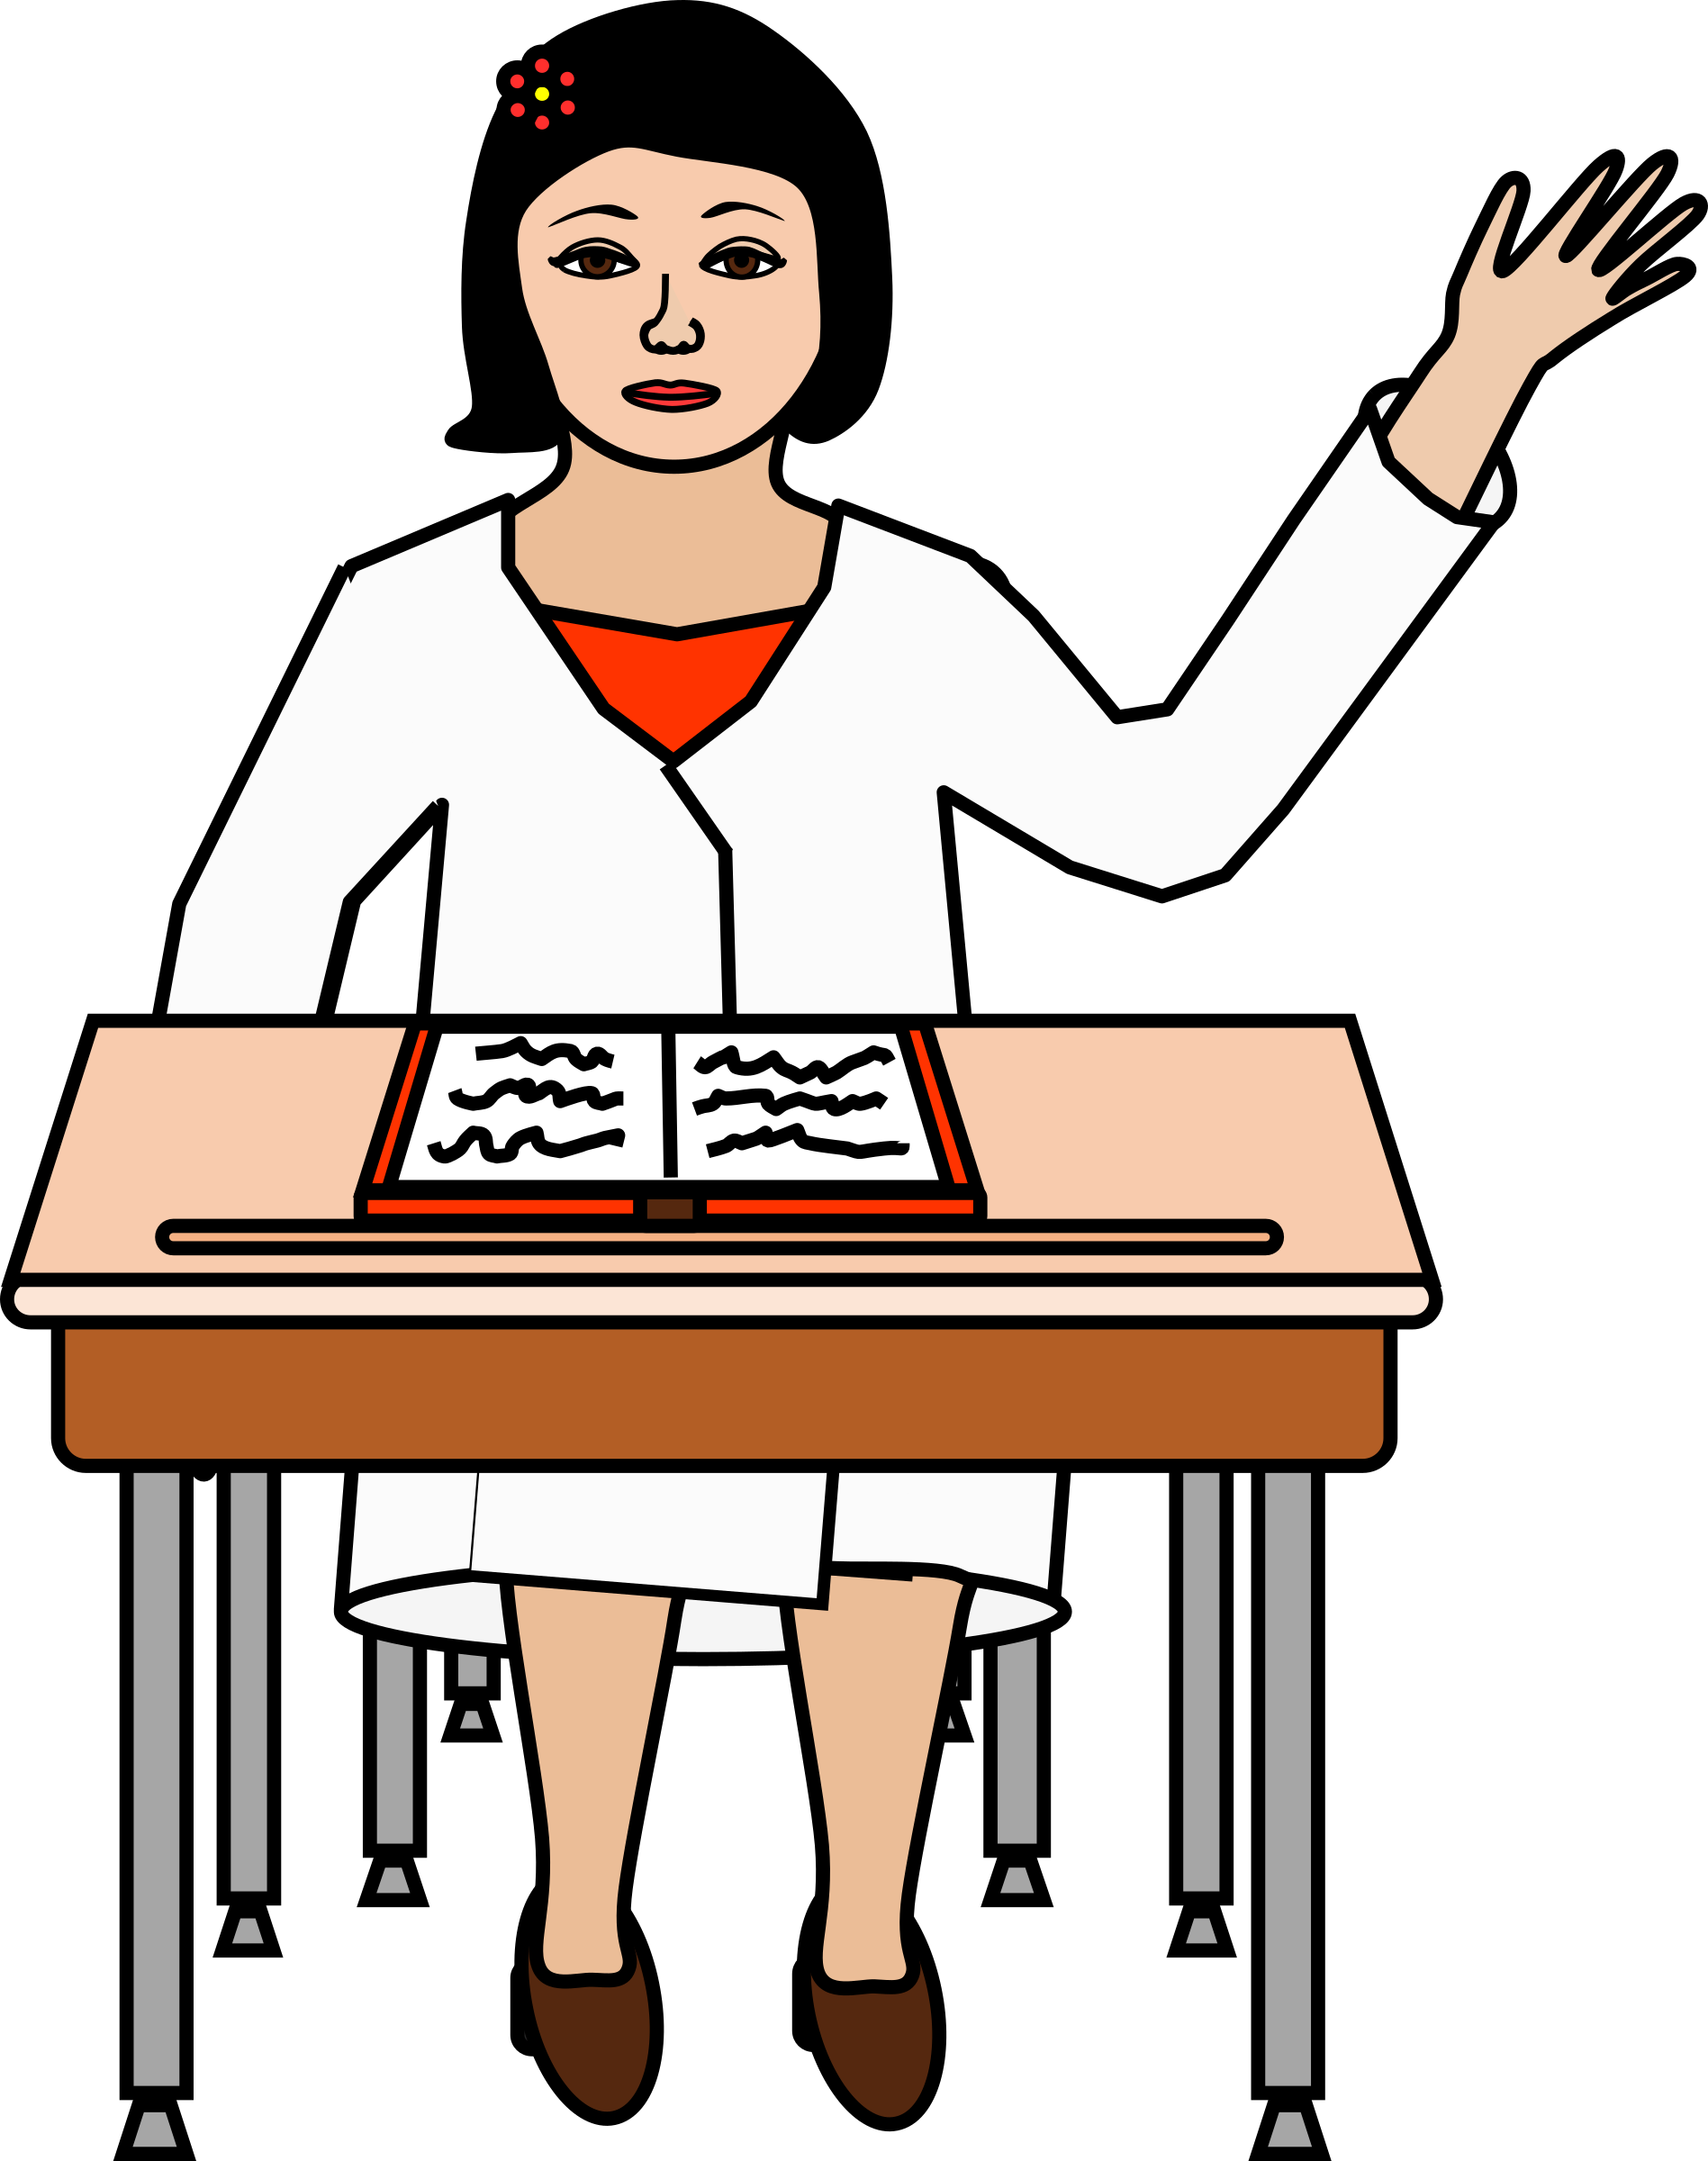 Person clipart fan. Student raising her hand